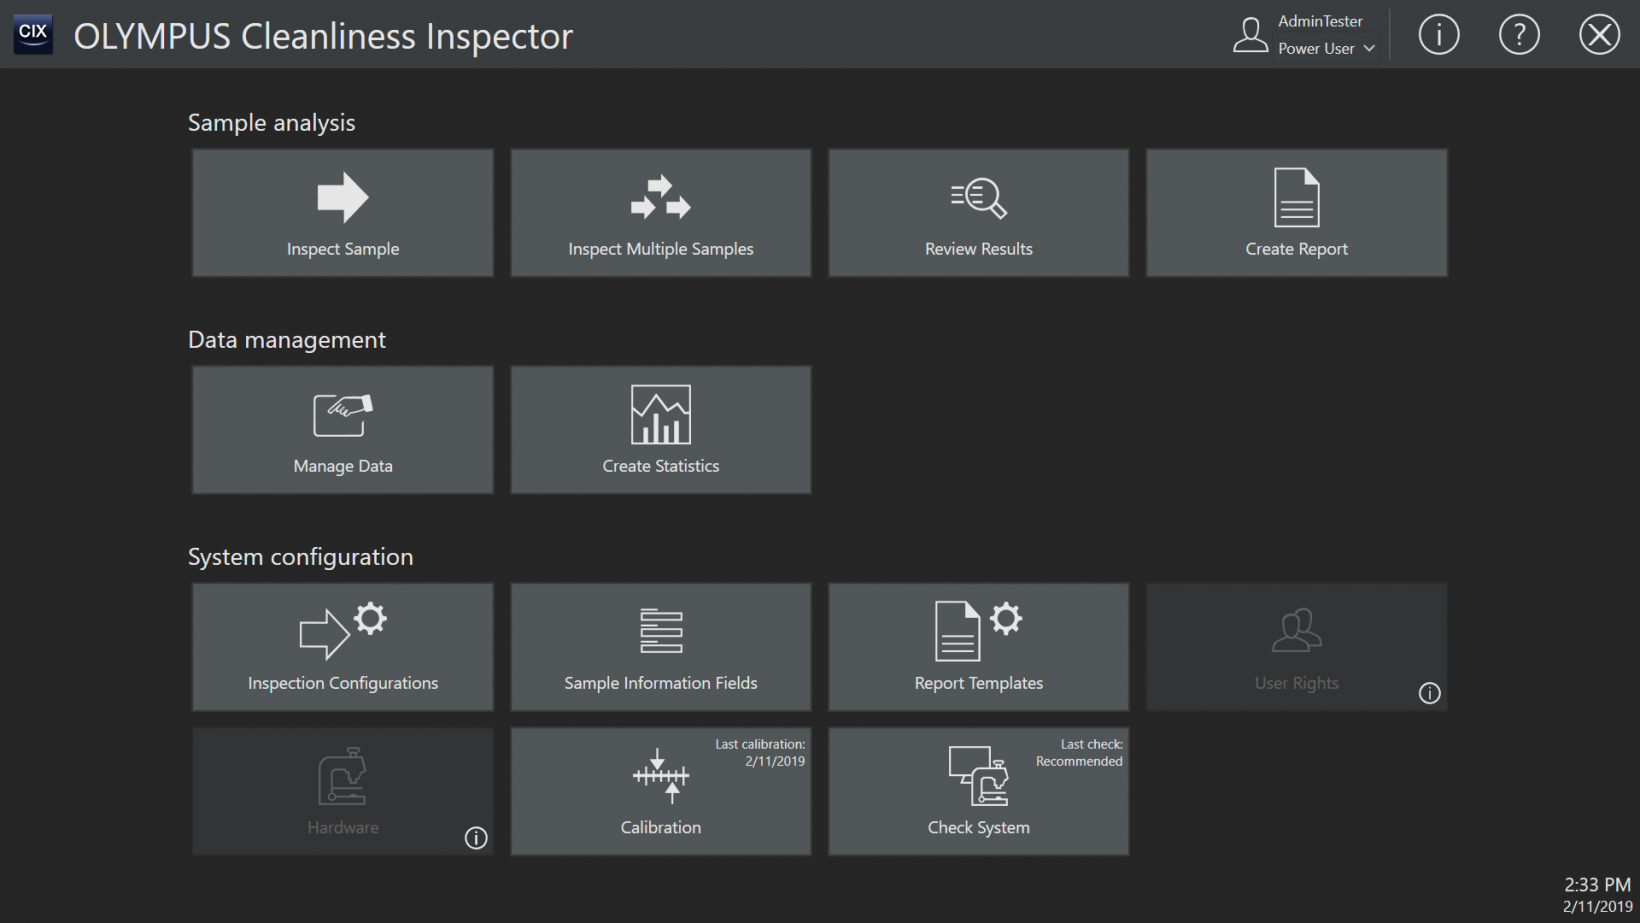 Cleanliness inspection system user interface